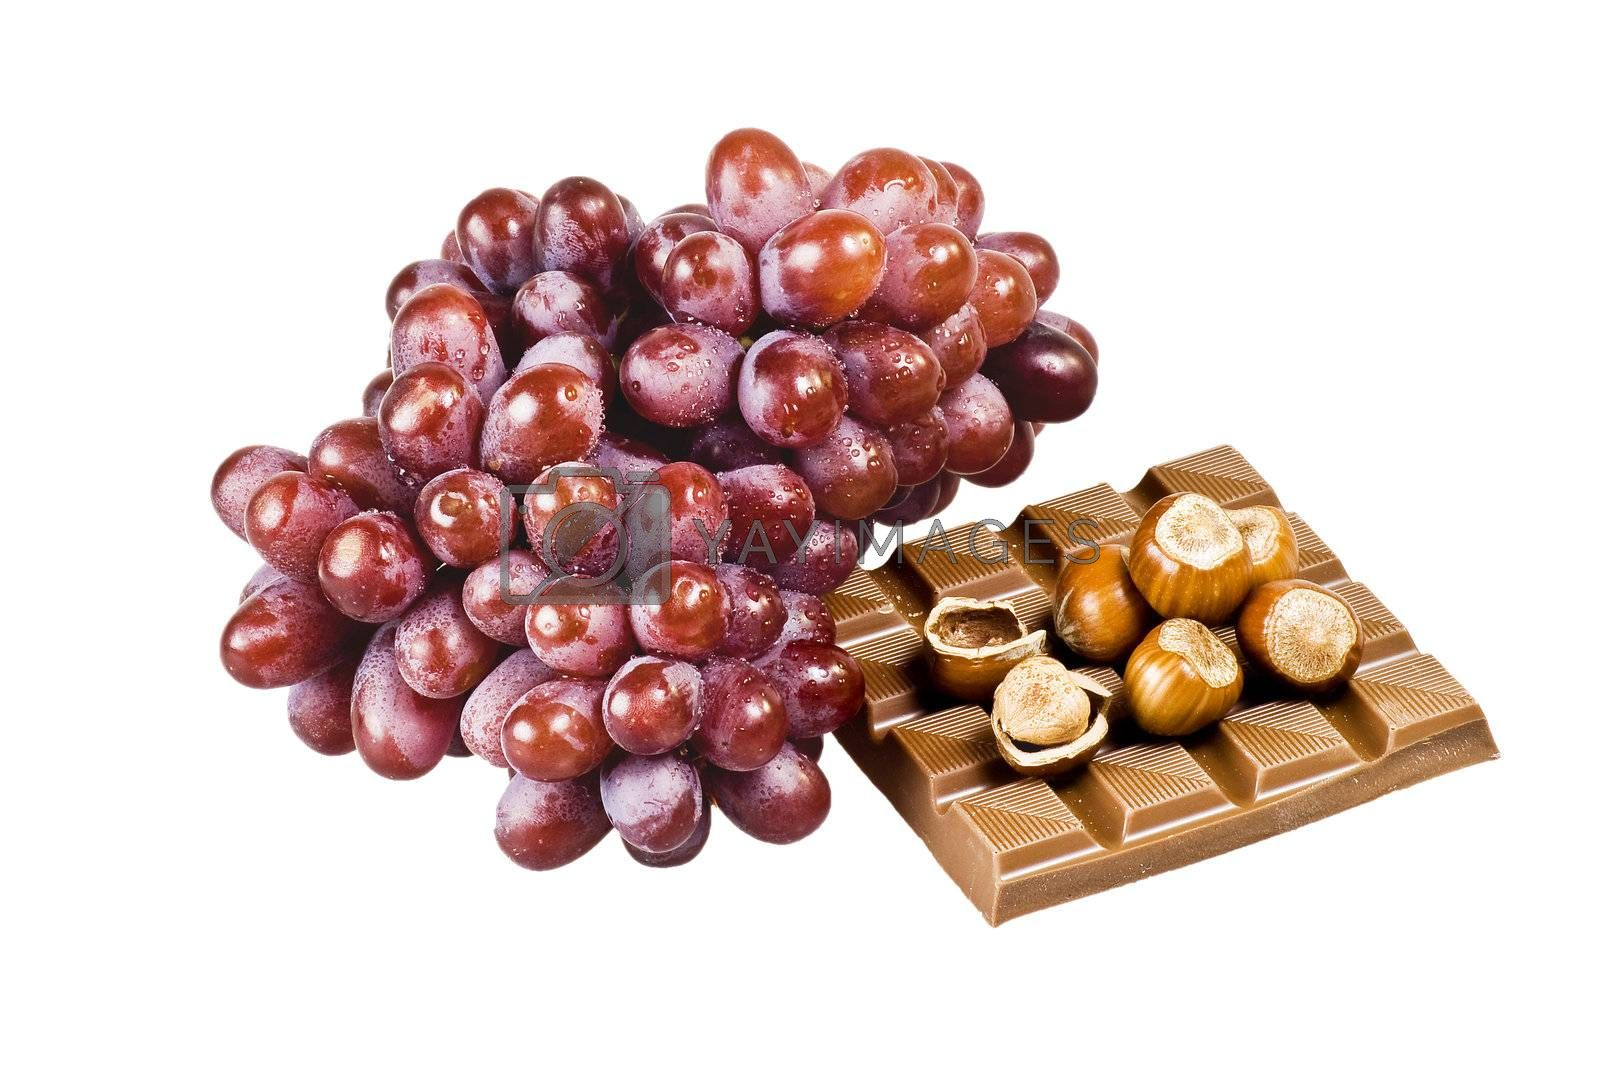 Chocolate, nuts and grapes by caldix